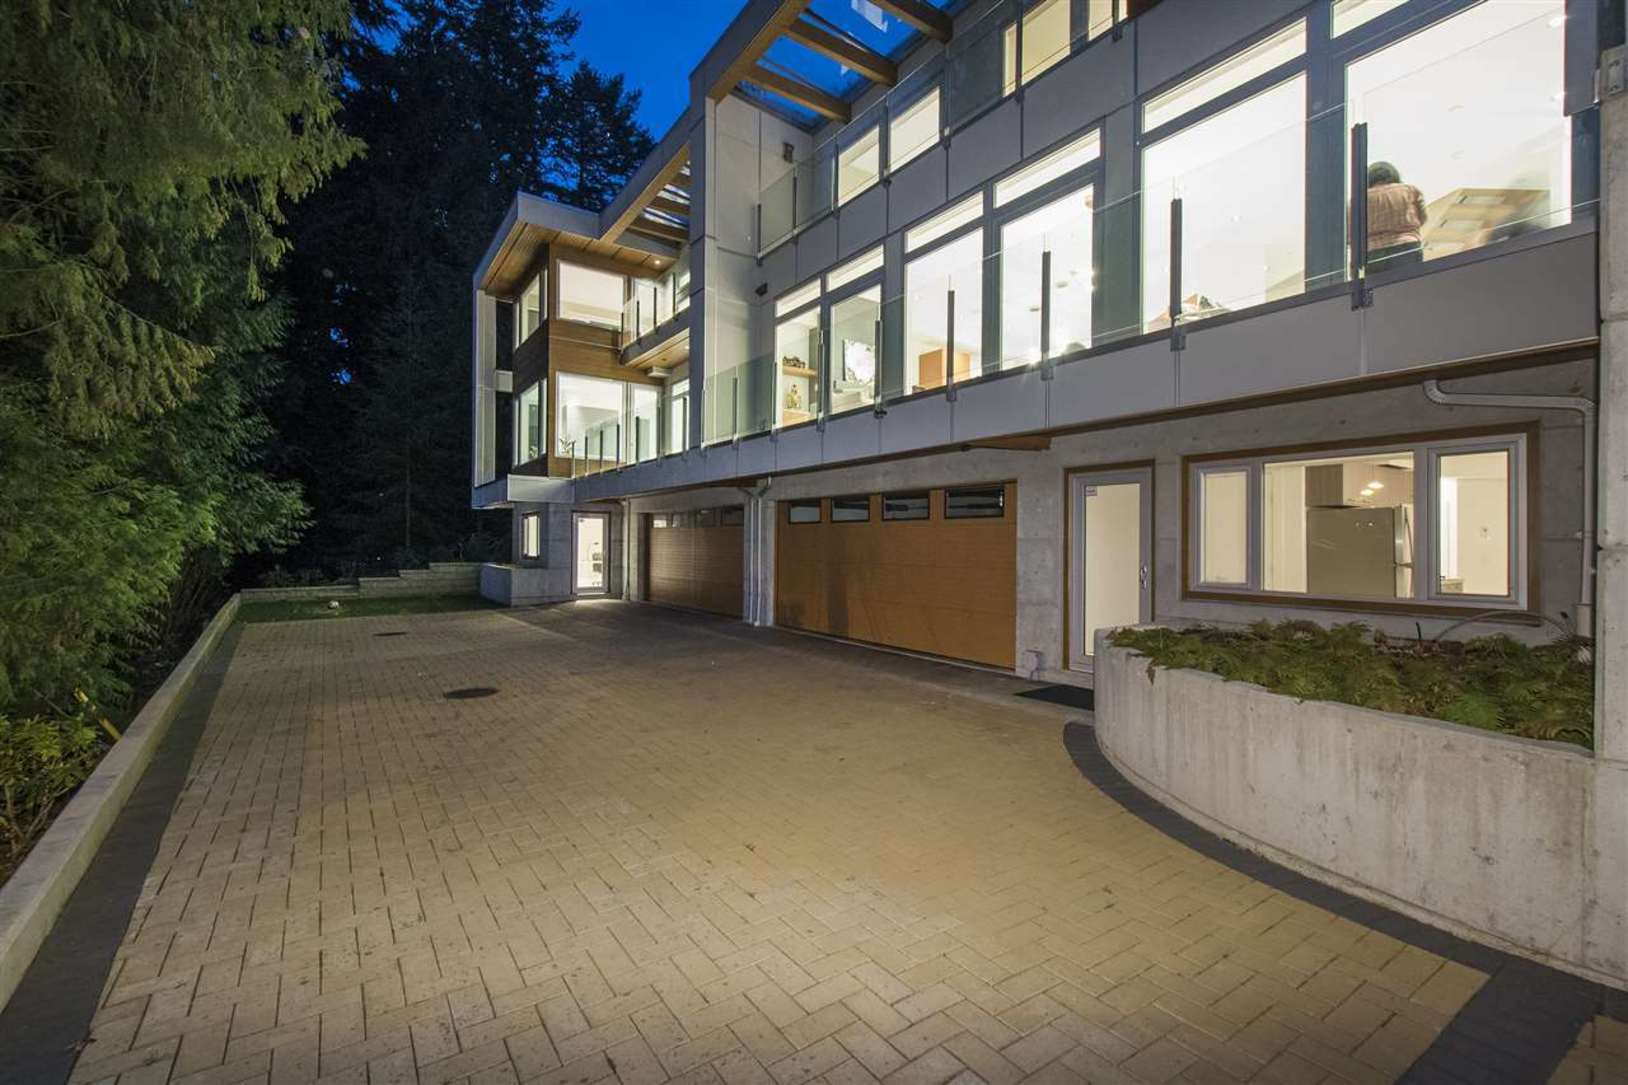 968-duchess-avenue-sentinel-hill-west-vancouver-09 at 968 Duchess Avenue, Sentinel Hill, West Vancouver